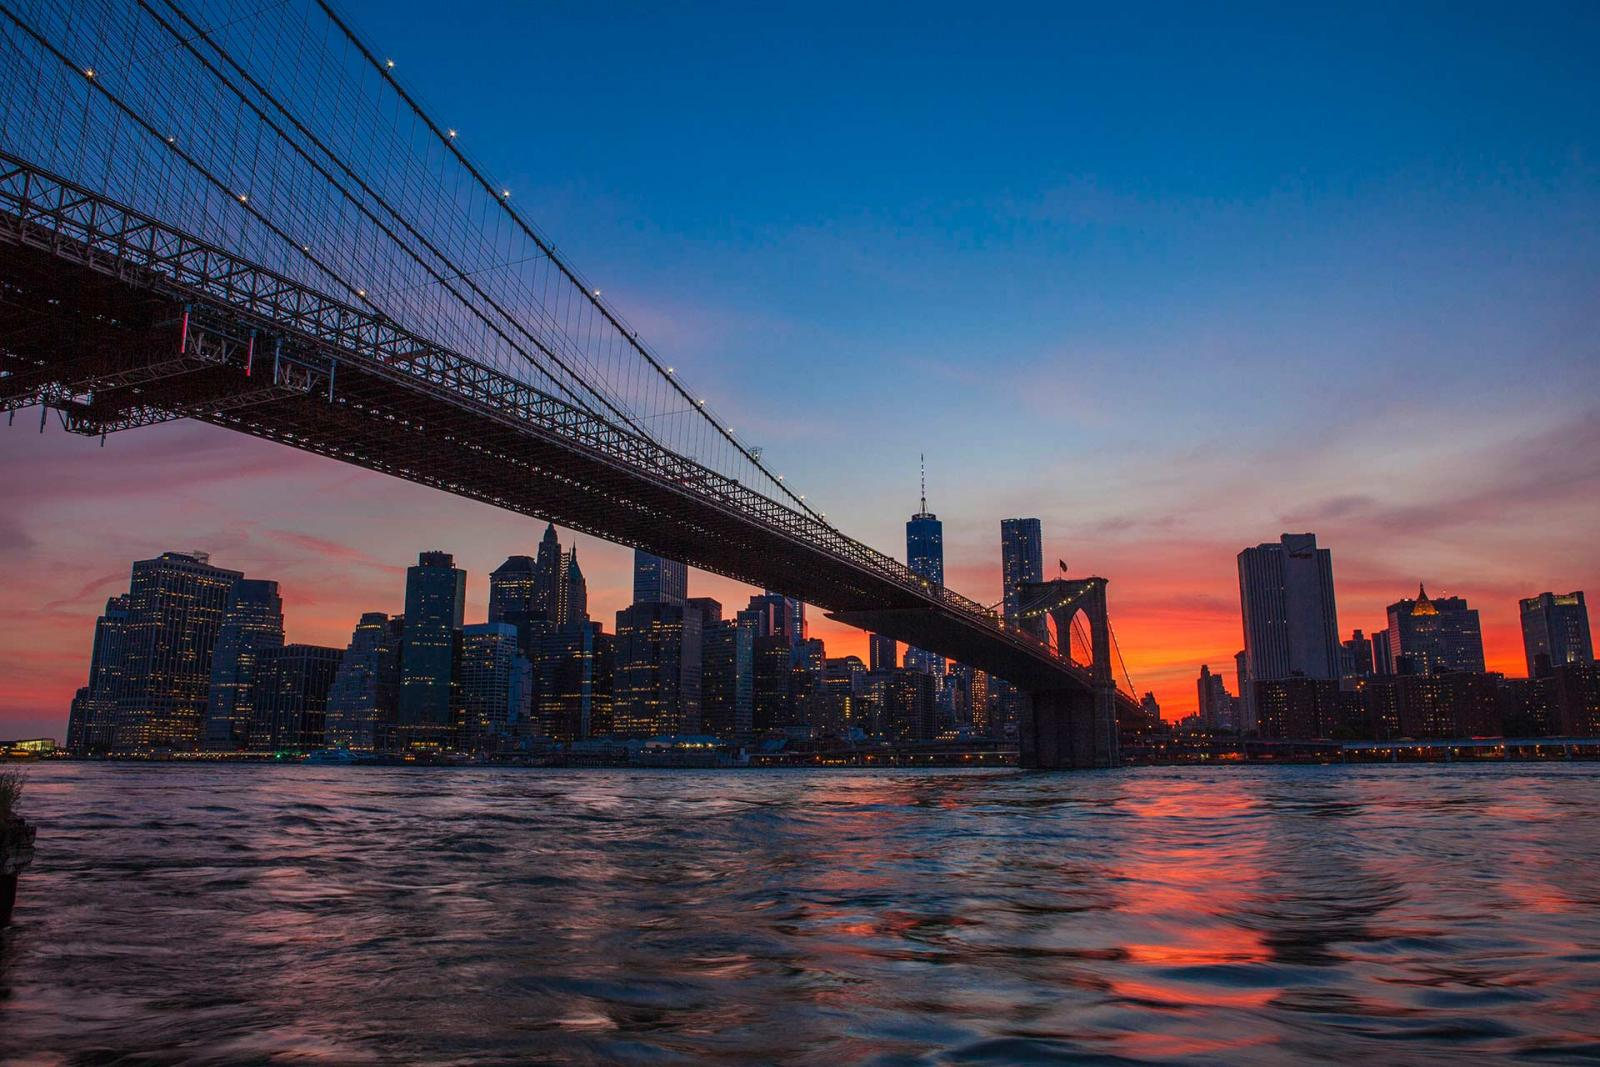 New York City – Twilight cruise